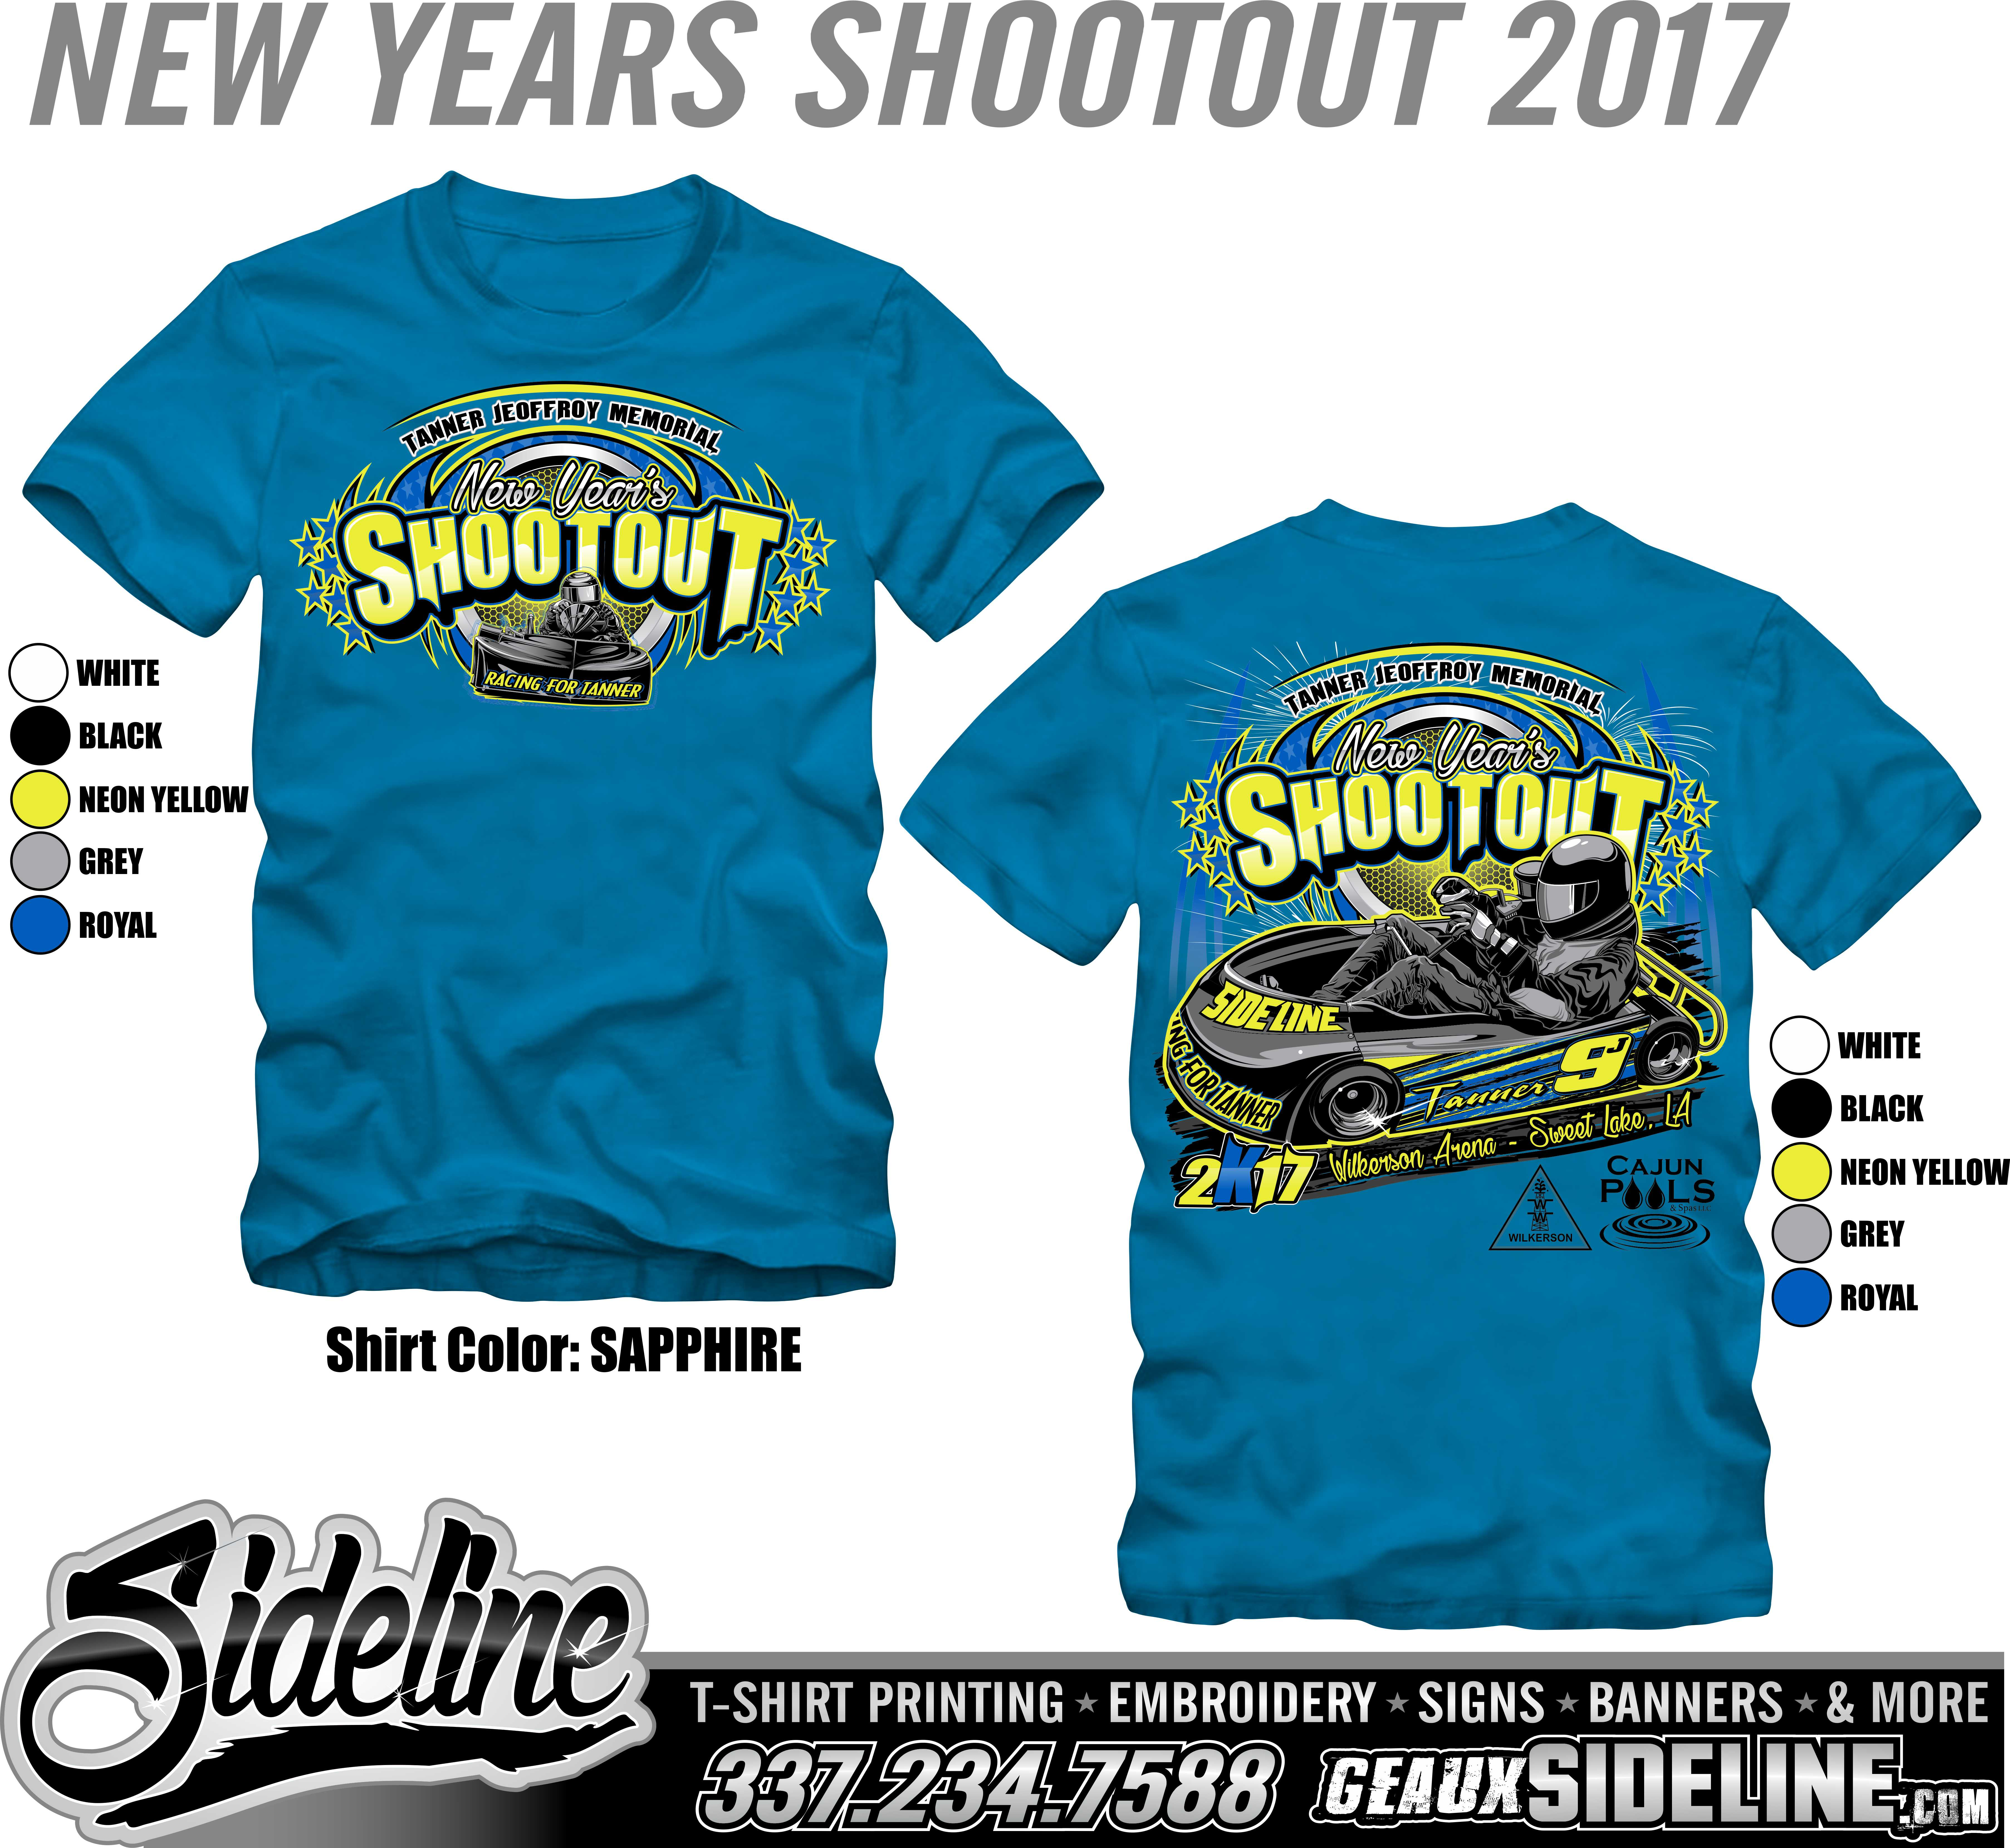 NEW YEARS SHOOTOUT 2017